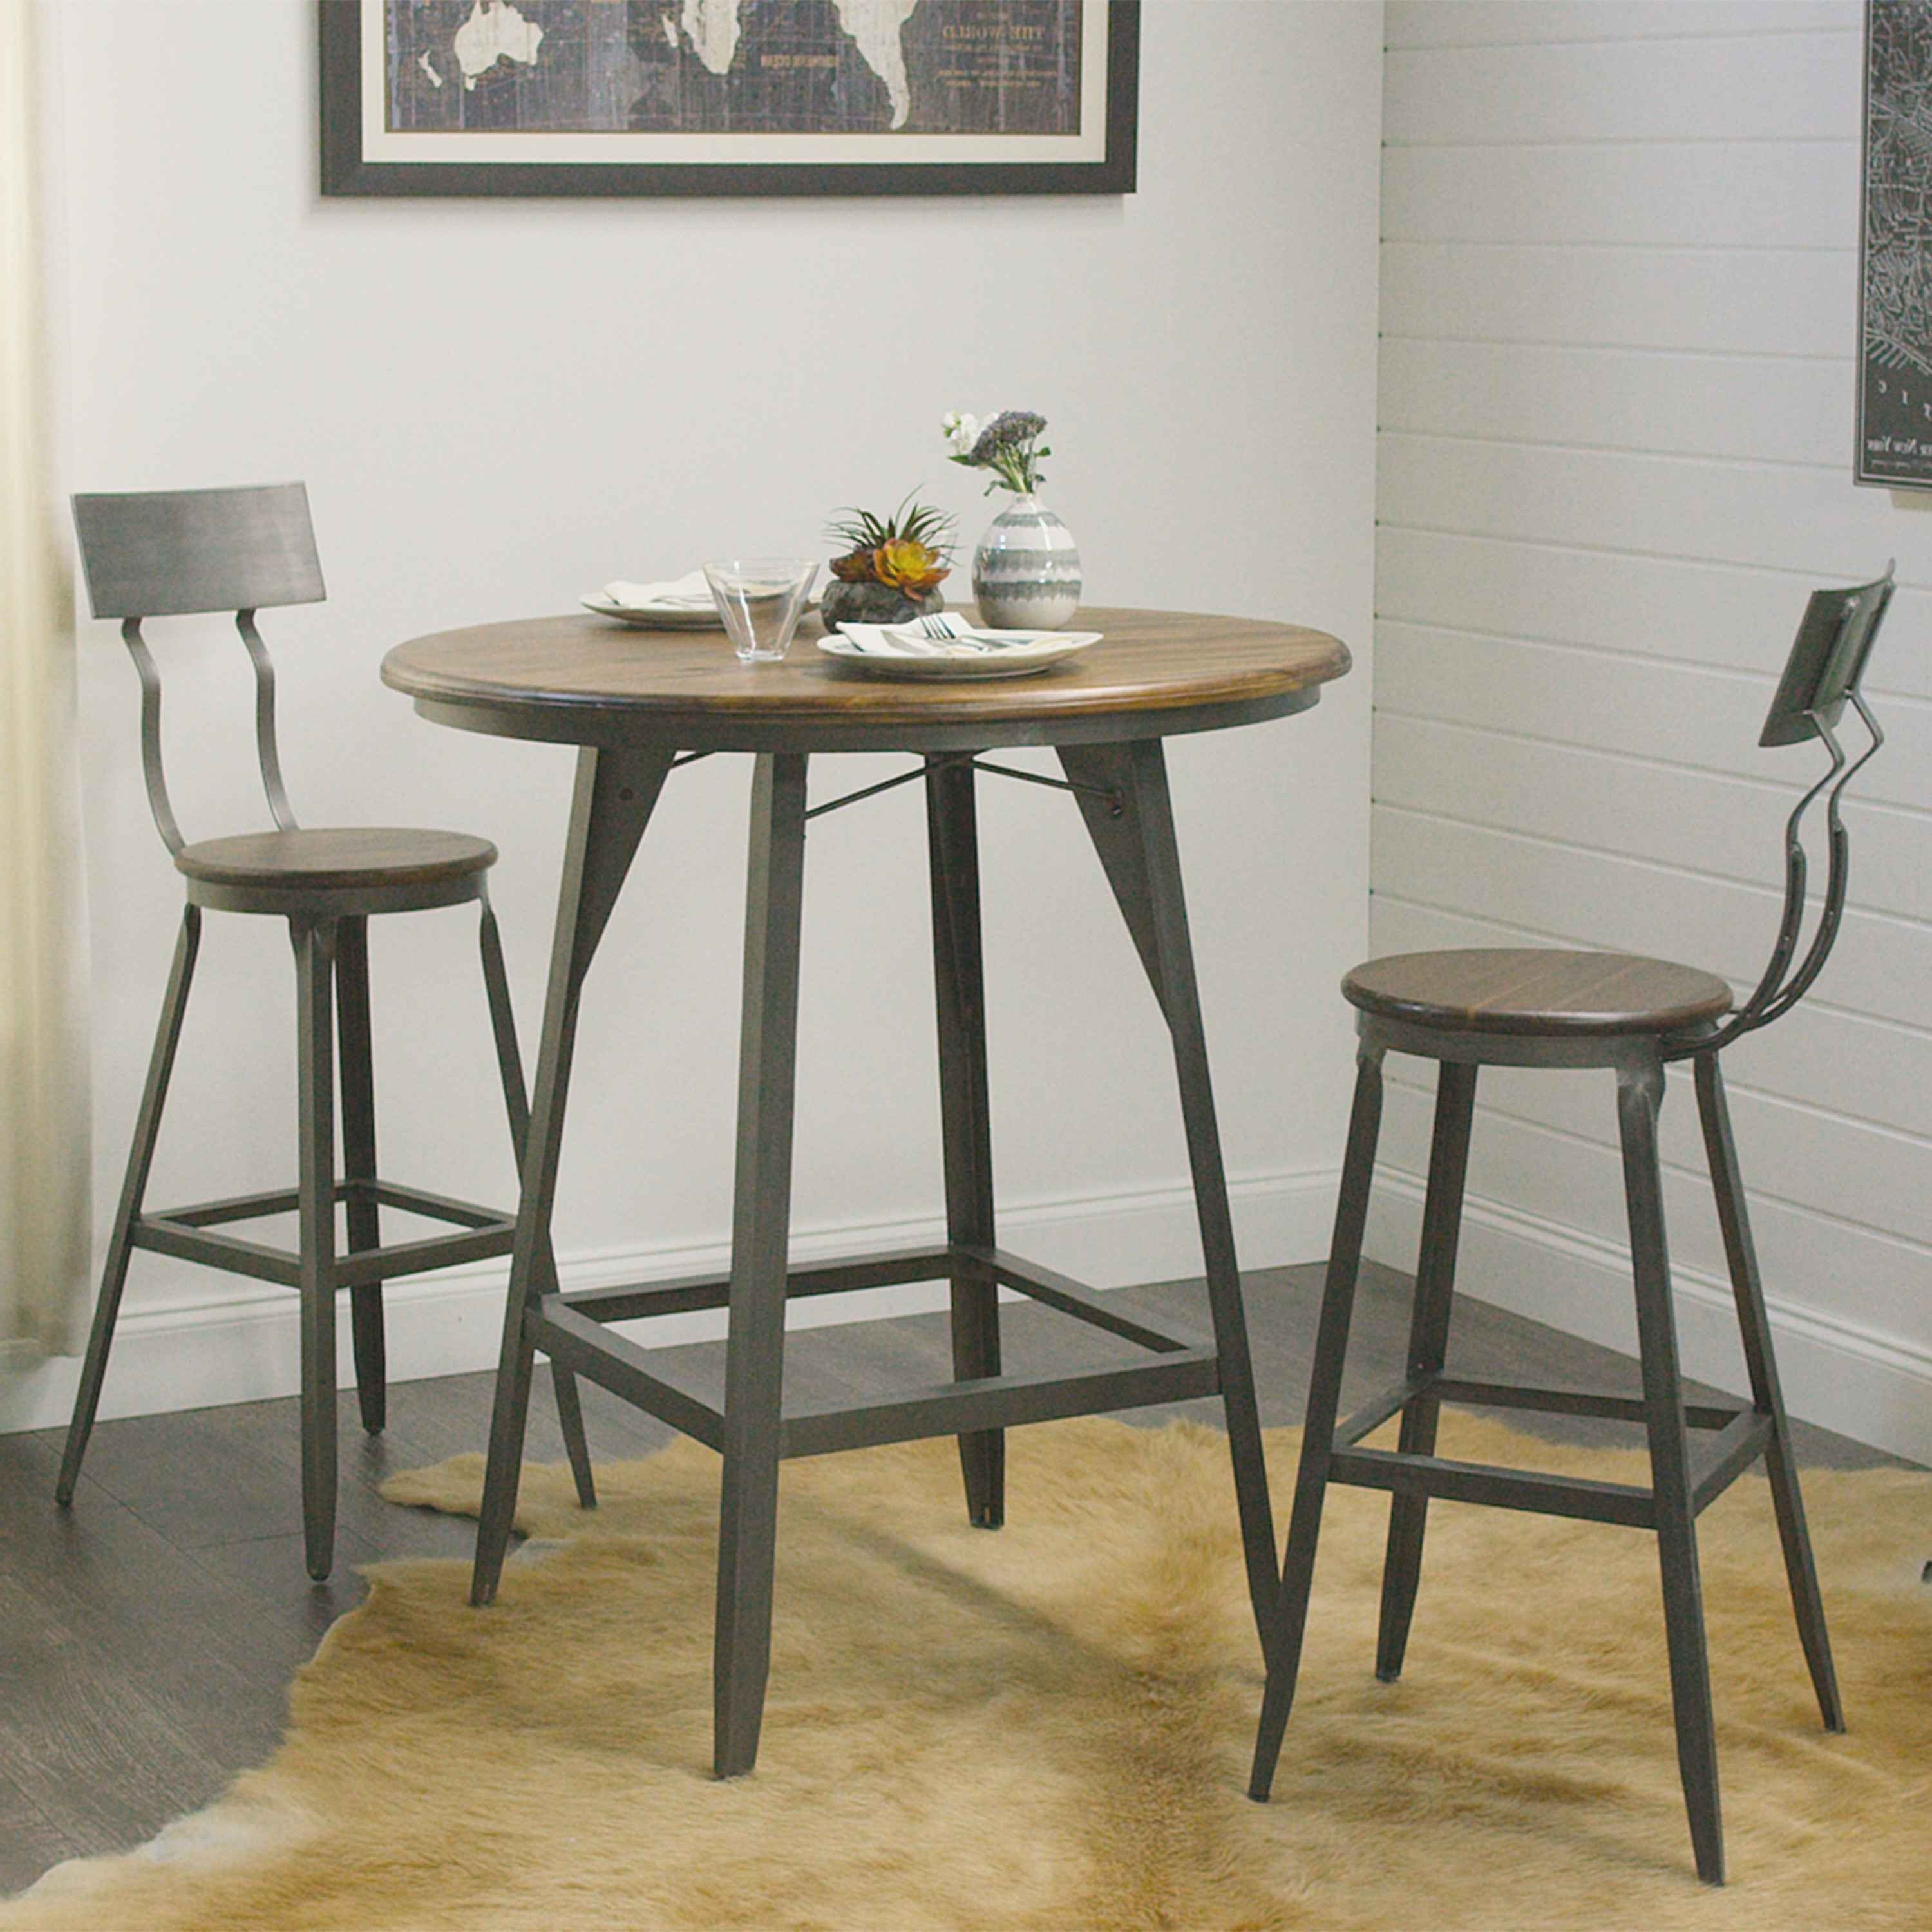 Most Popular Small Dining Tables For 2 In Small Dining Table For Two Beautiful 29 Pleasing Small Dining Room (View 25 of 25)